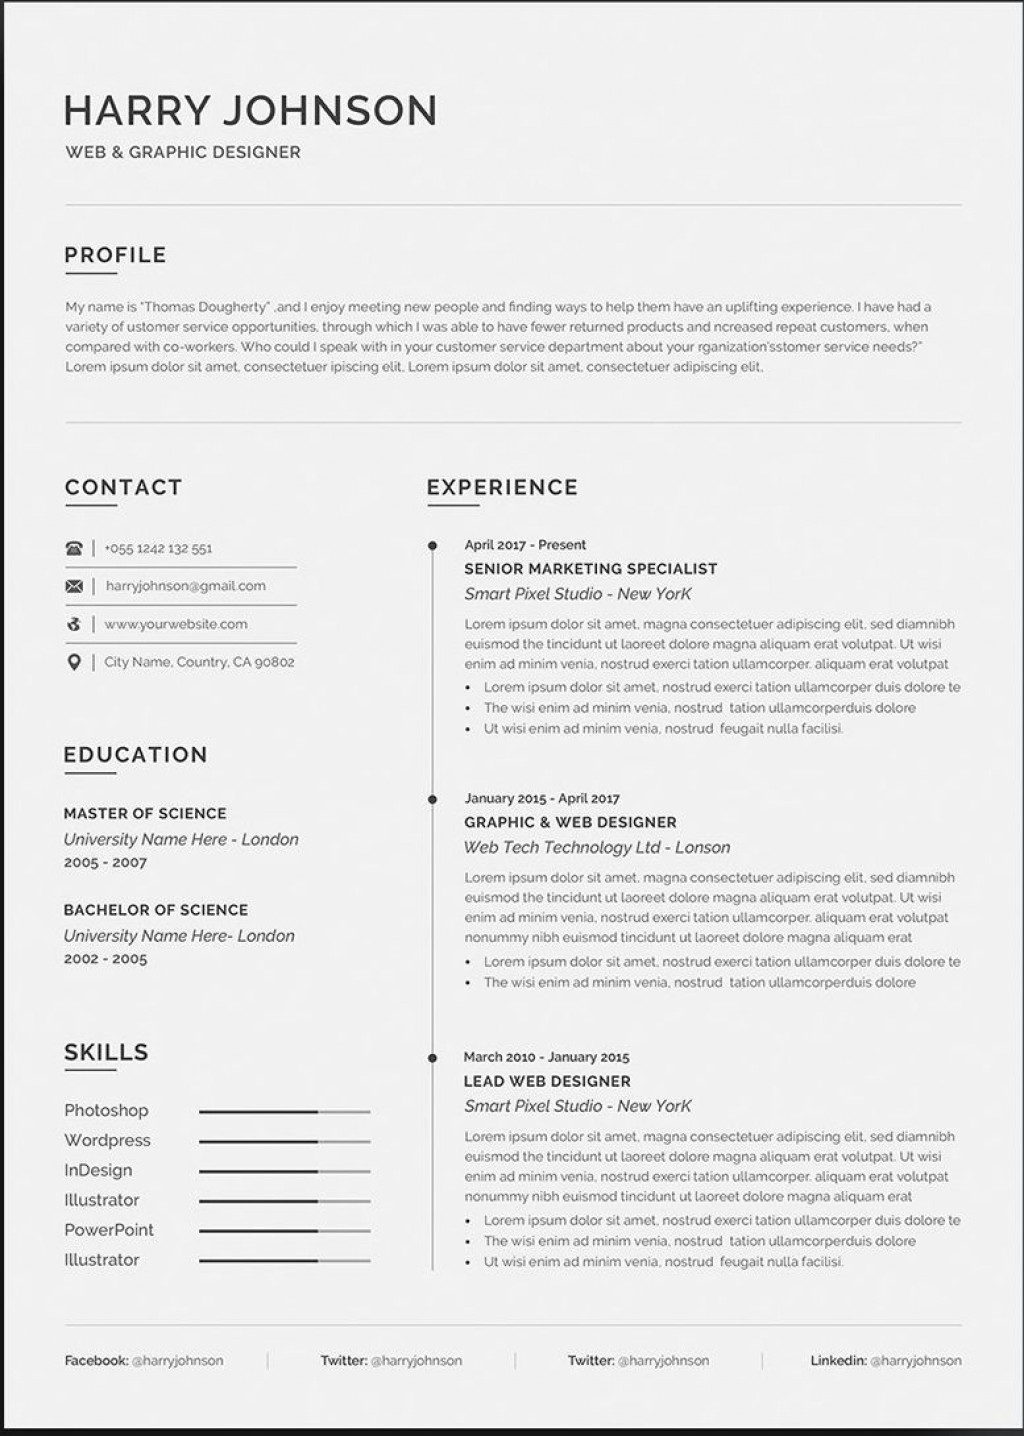 008 Unique Make A Resume Template In Word Highest Clarity  How To 2010 2007Large